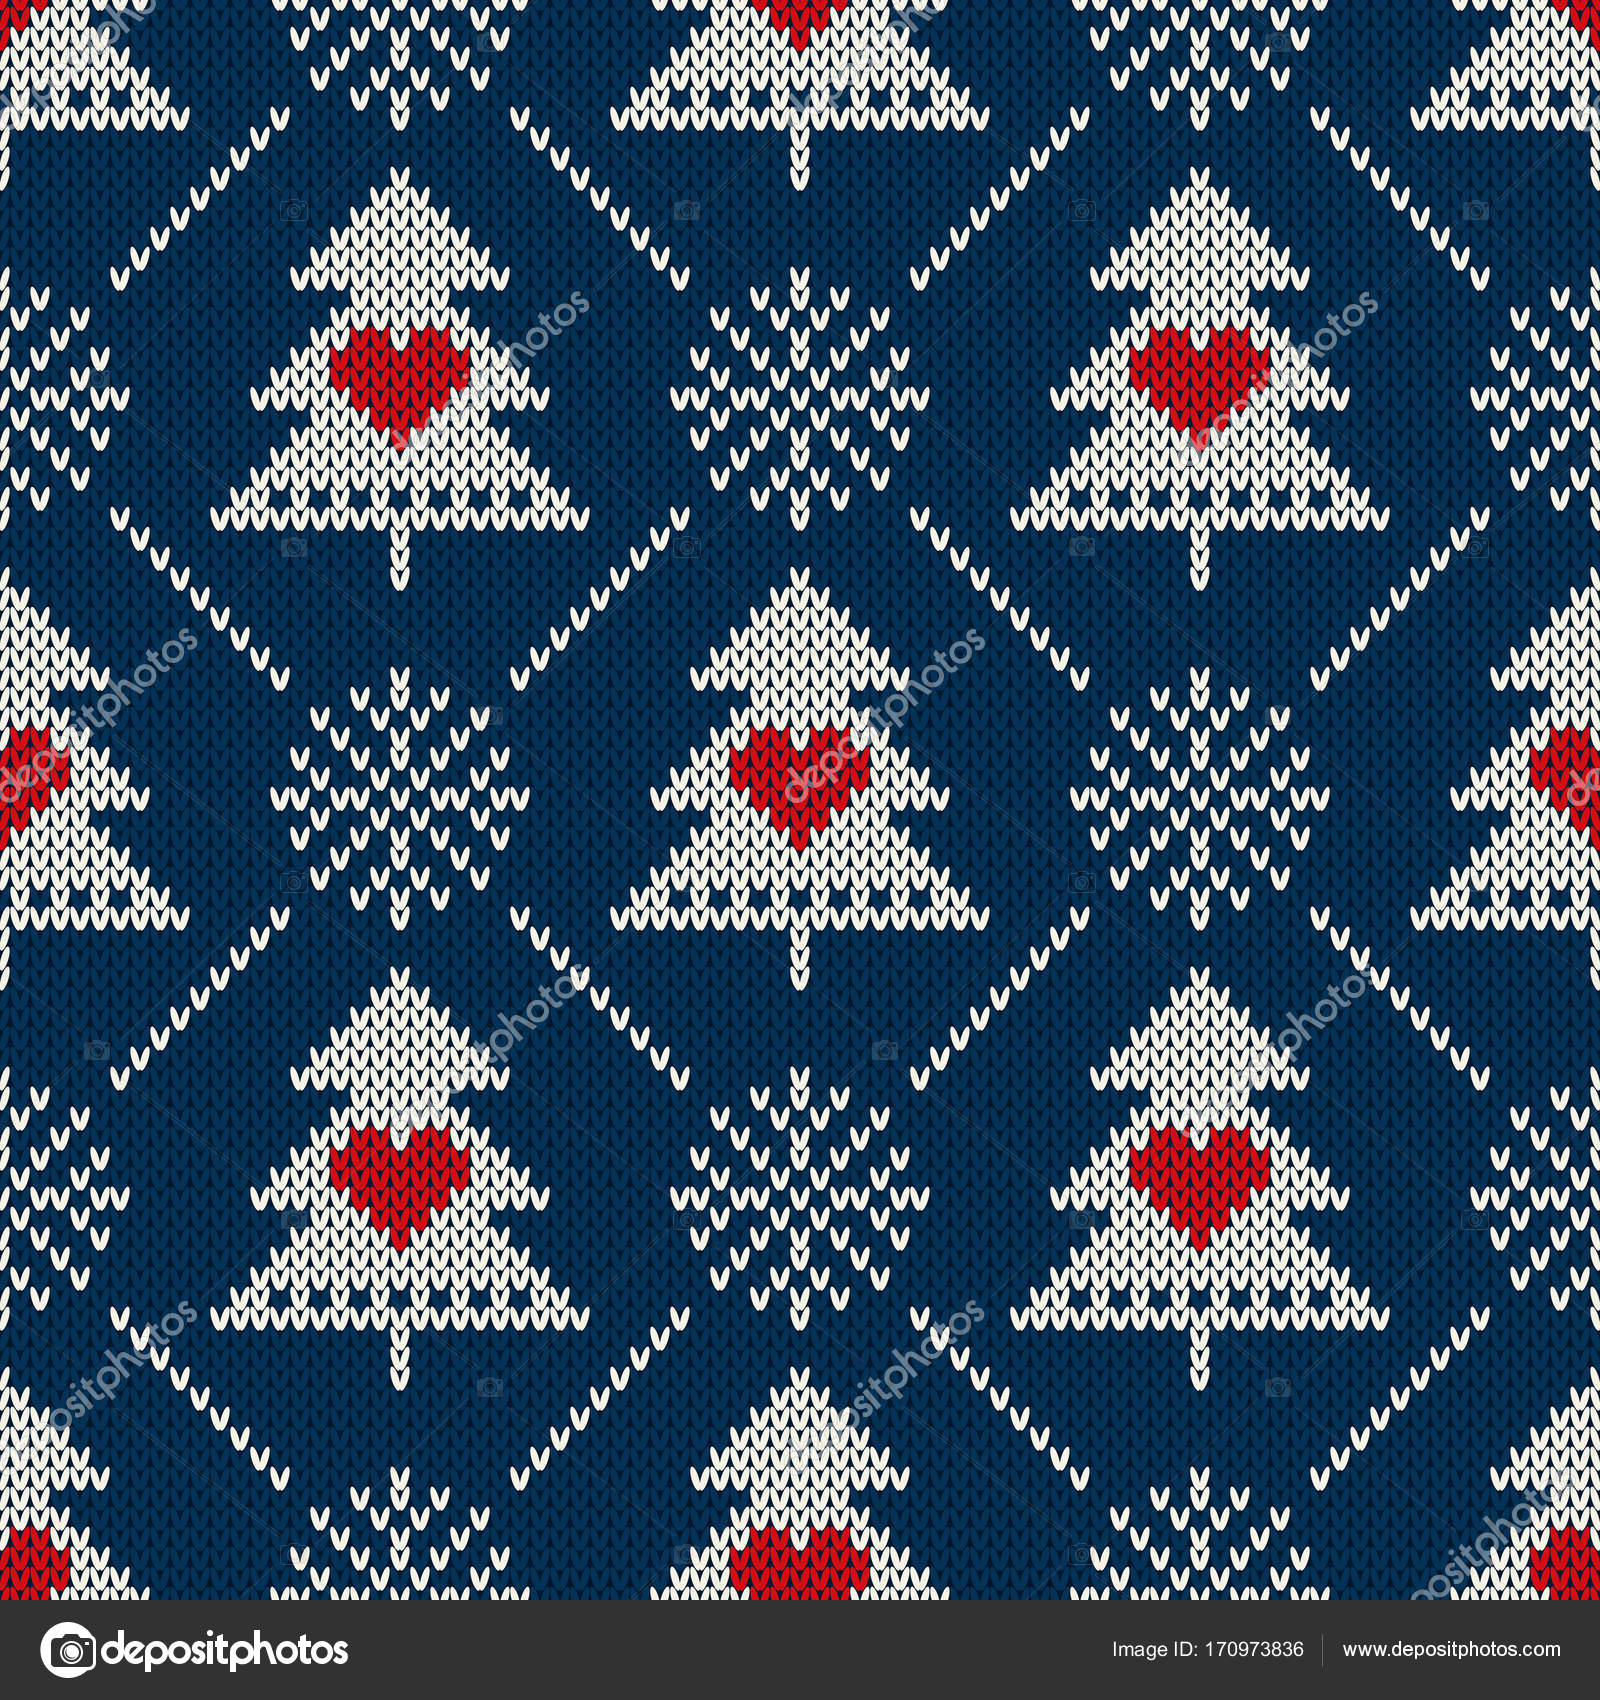 Snowflake Pattern Knitting Winter Holiday Seamless Knitted Pattern With A Christmas Symbols